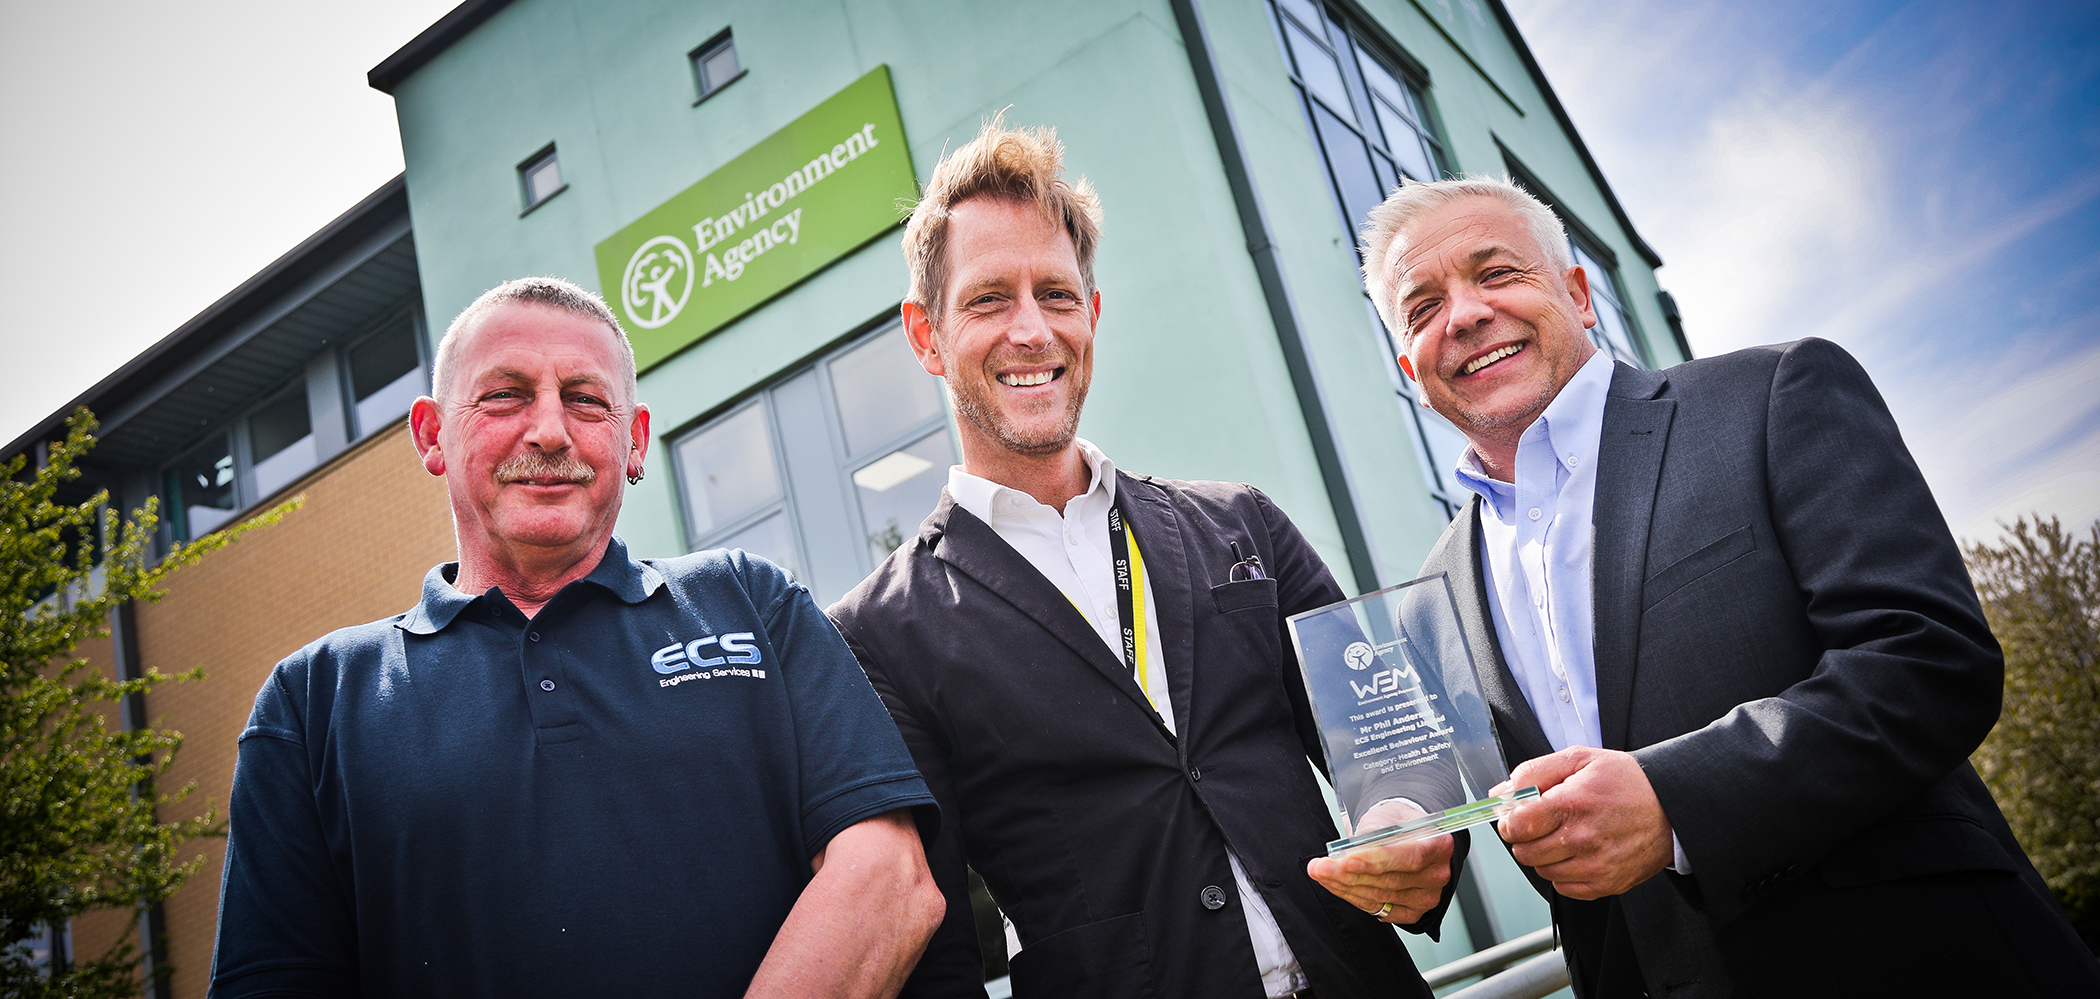 Environment Agency Award recognises ECS impressive Health and Safety Performance